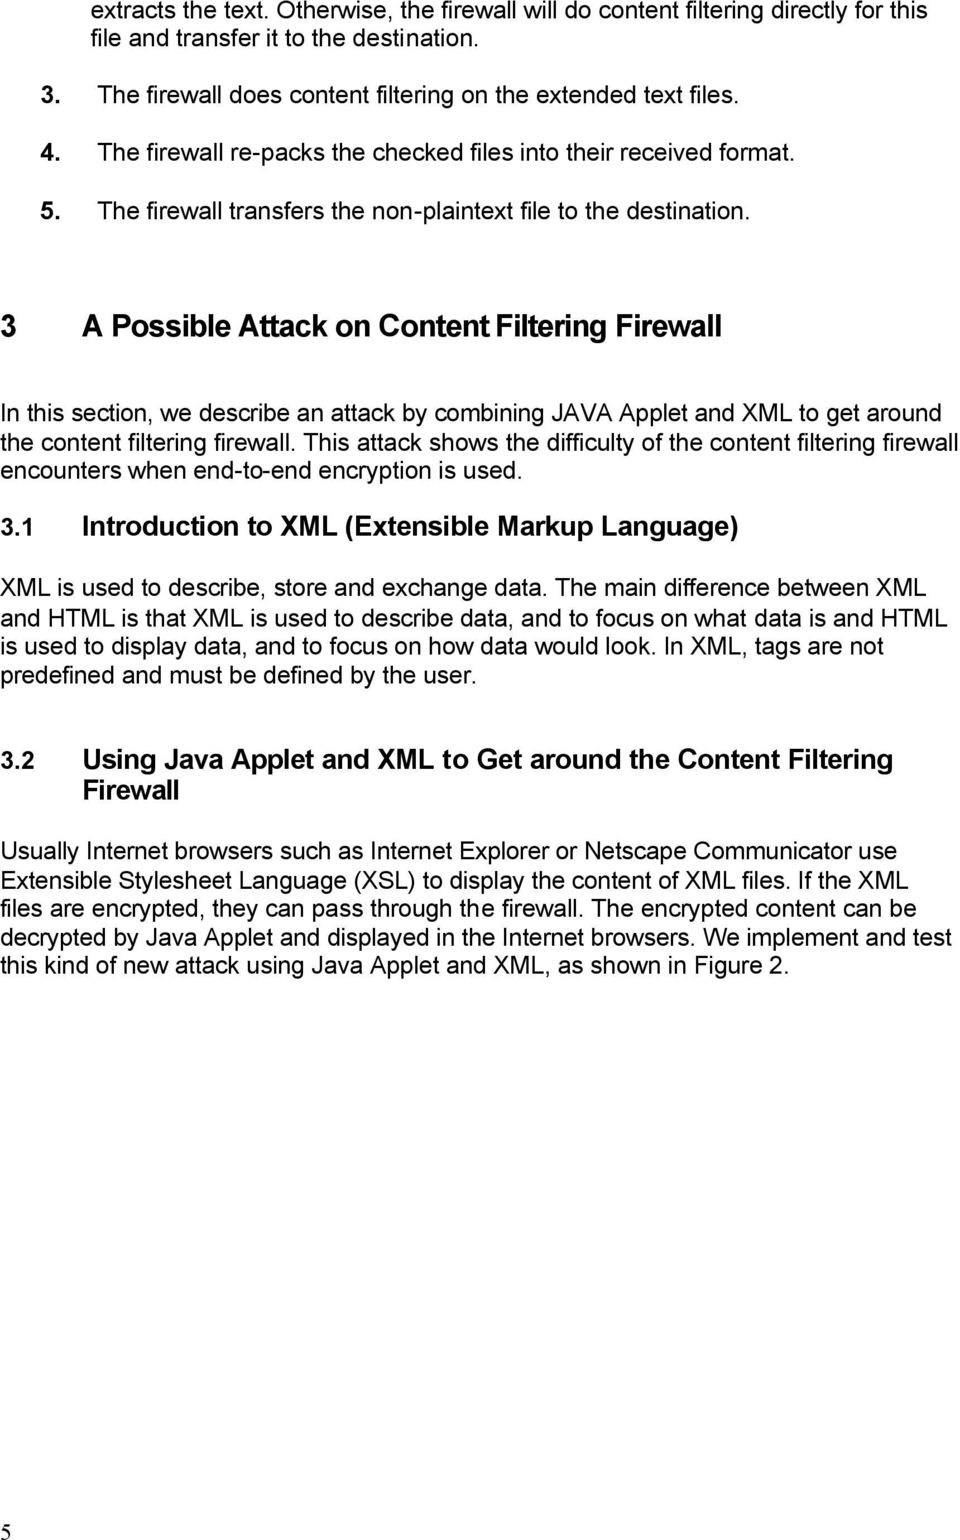 3 A Possible Attack on Content Filtering Firewall In this section, we describe an attack by combining JAVA Applet and XML to get around the content filtering firewall.